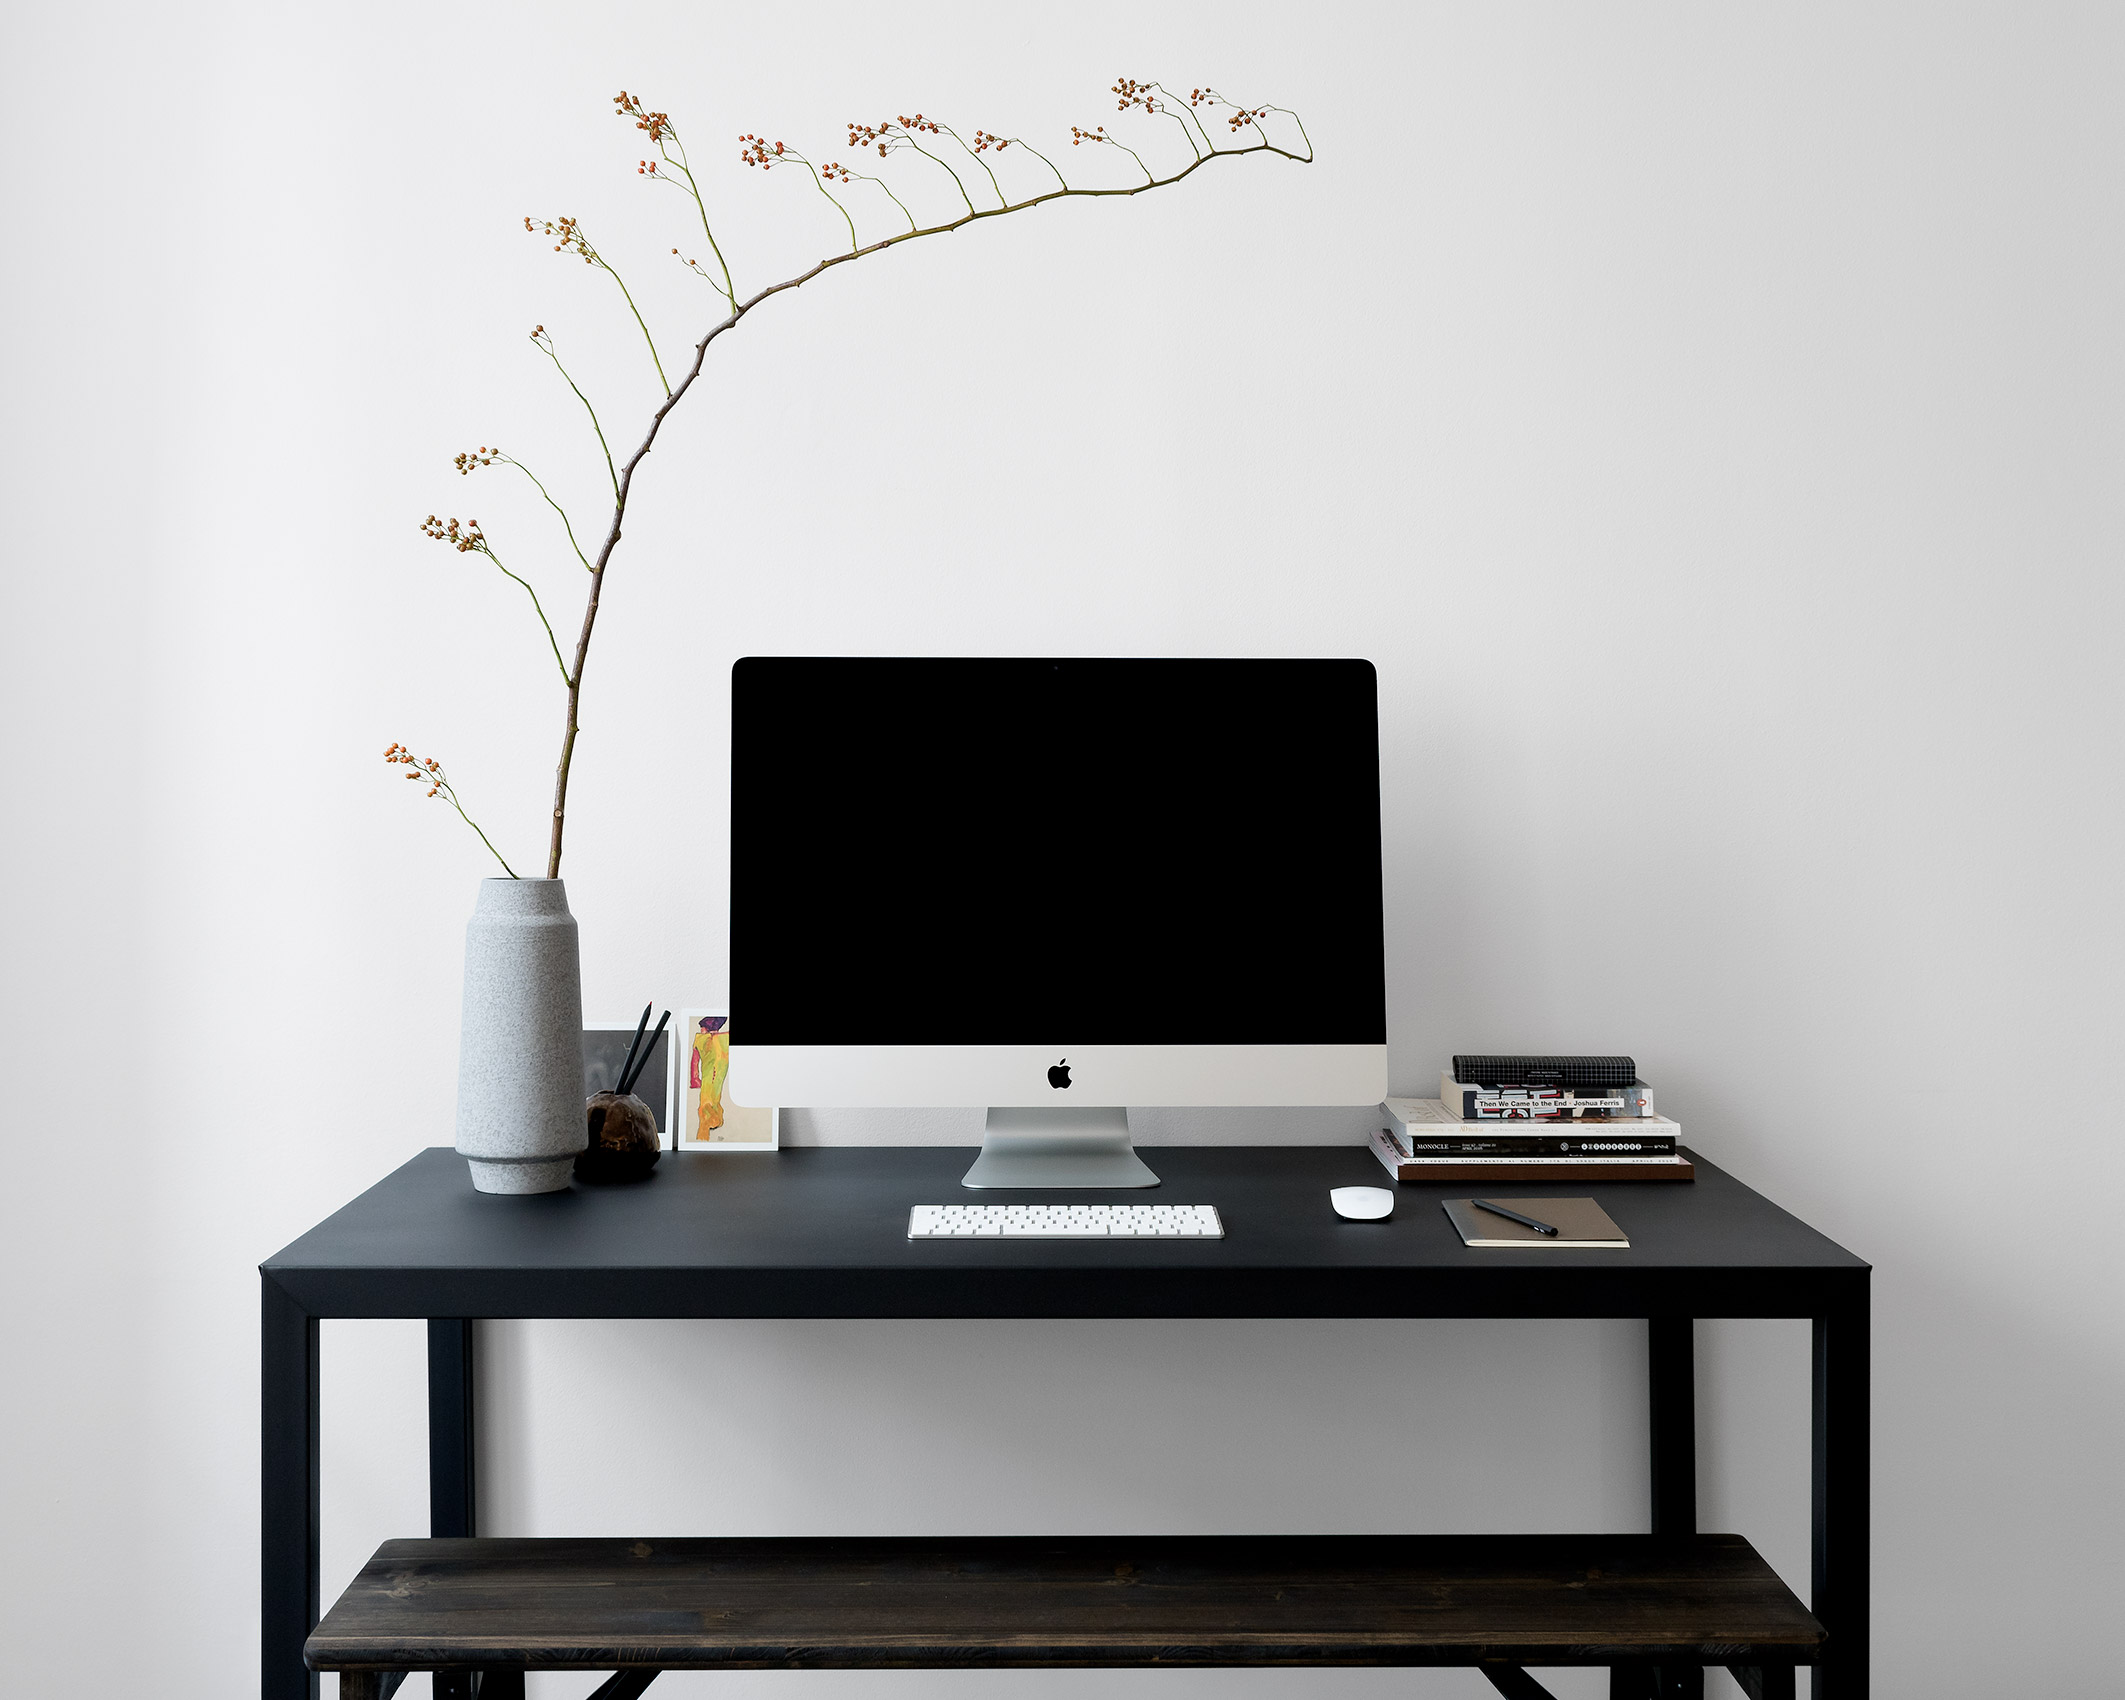 Black metal desk and bench with iMAC and Japanese concrete vase